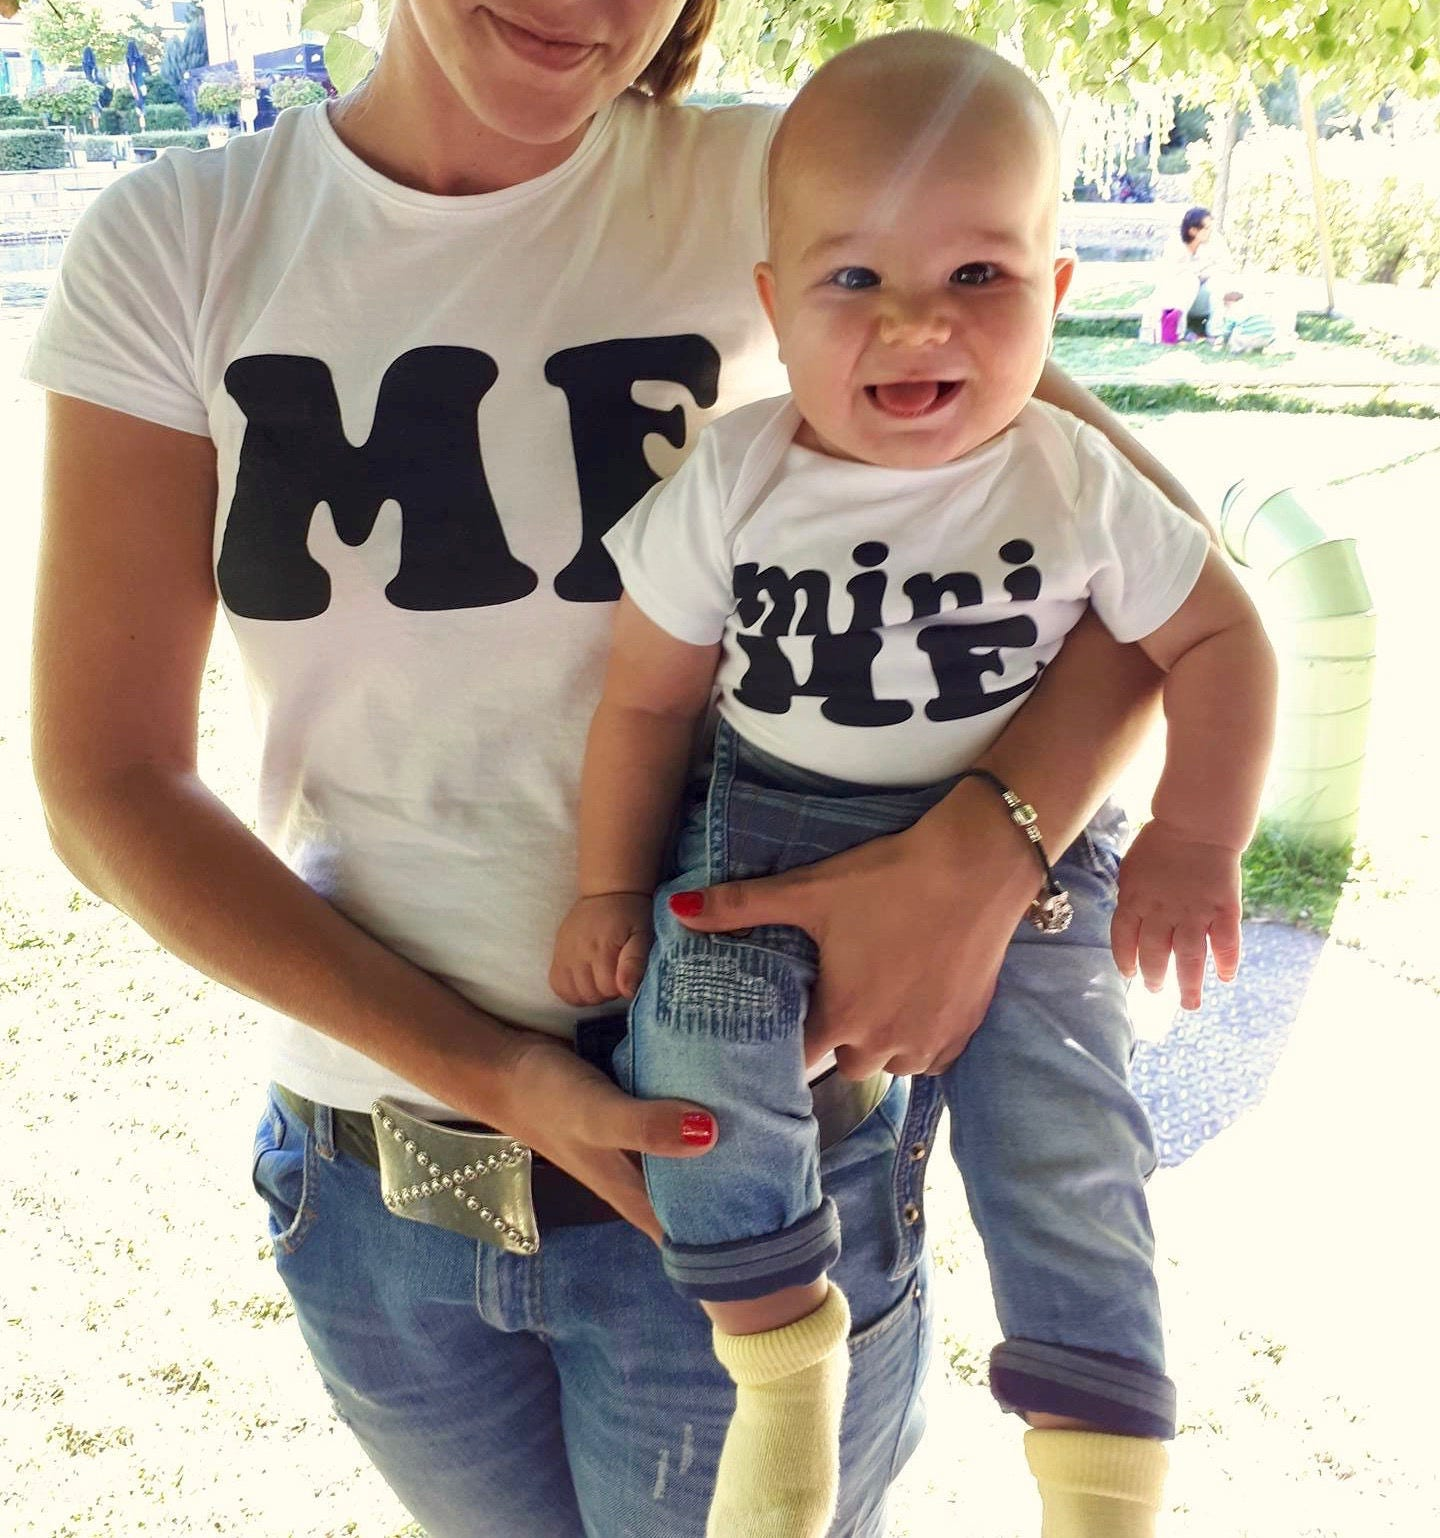 Details about  /Mini Me Mom and Baby Matching Gift Shirts Infant Tee New Mom Gifts